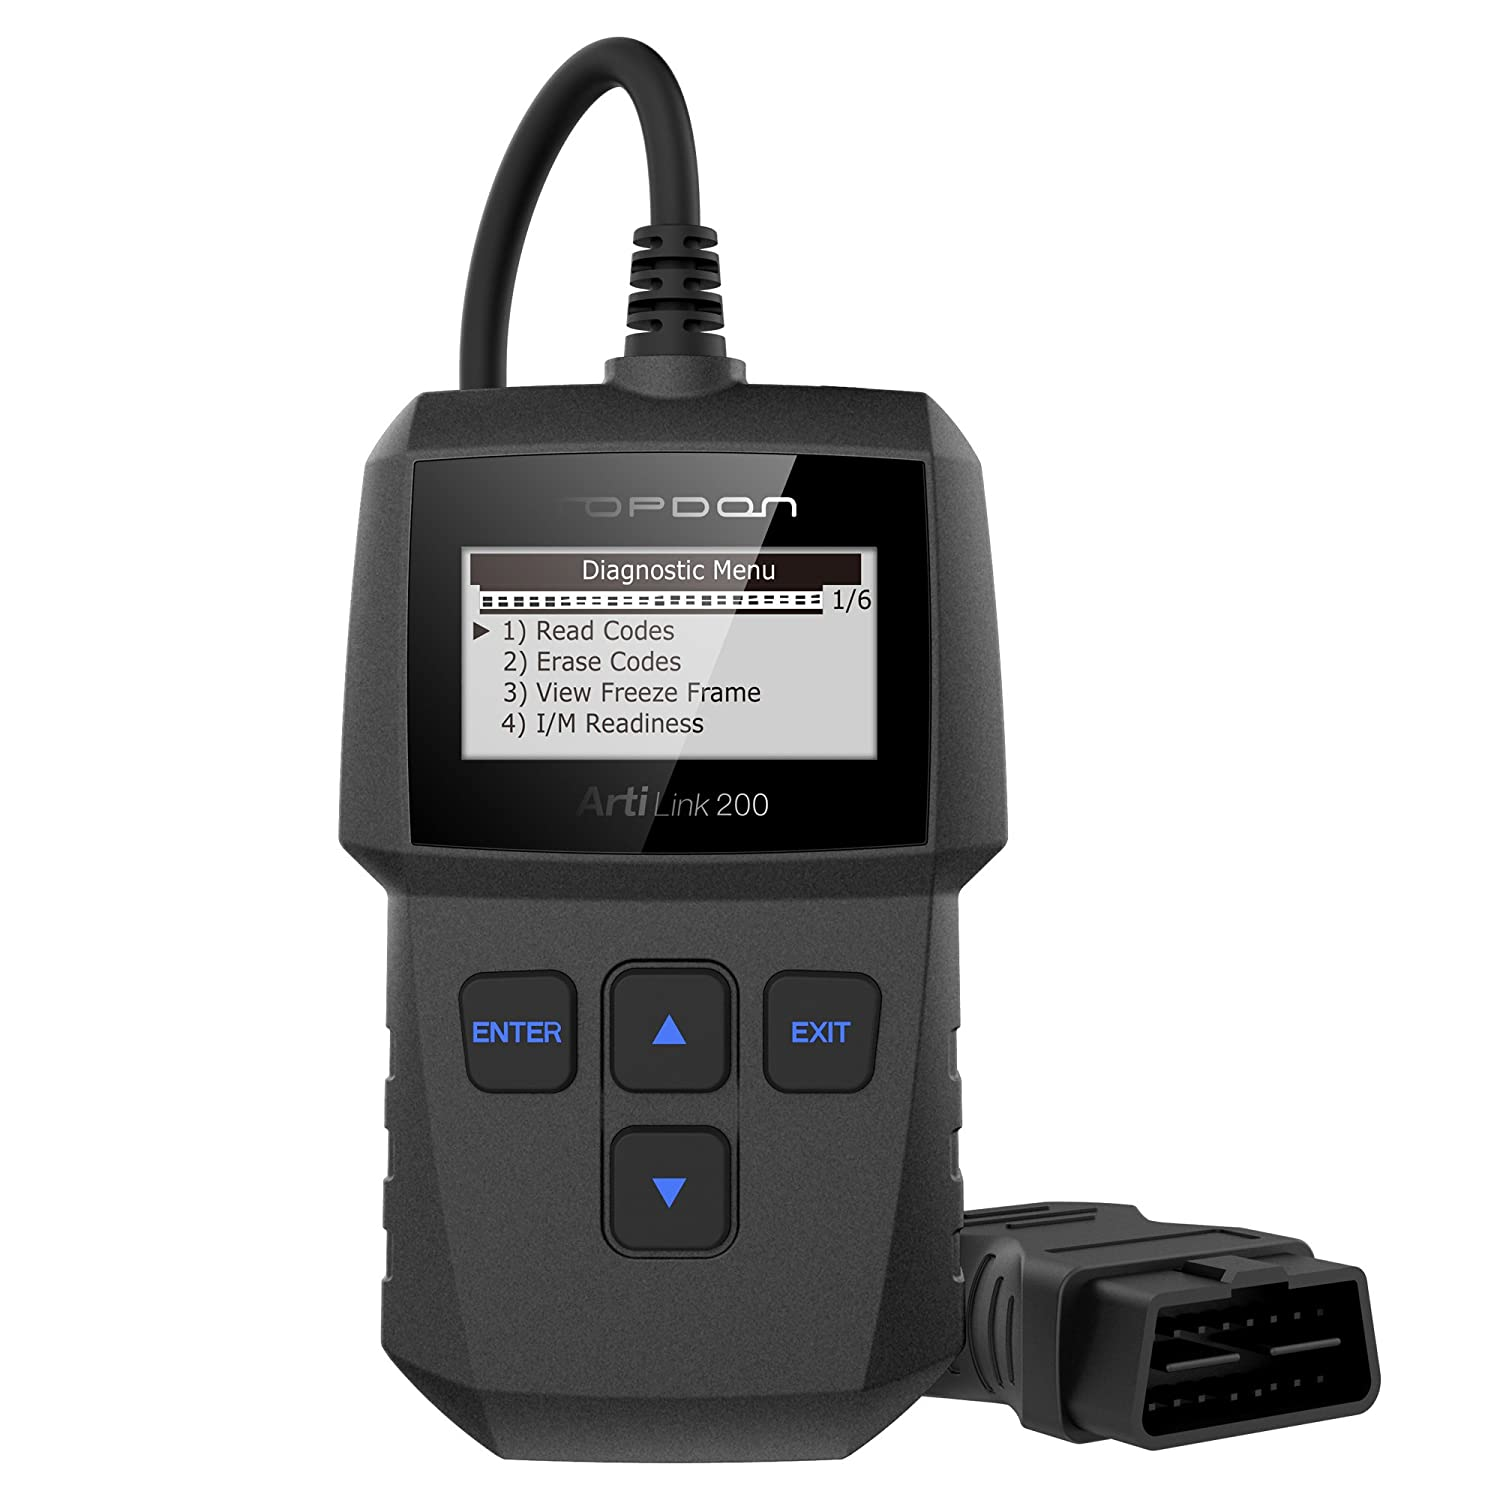 TT TOPDON Al200 Code Reader, Topdon Artilink200 OBD2 Scanner for DTC Reading/Clearing Mil Turn-Off I/M Readiness Checking Freeze Frame and Vin Retrieval